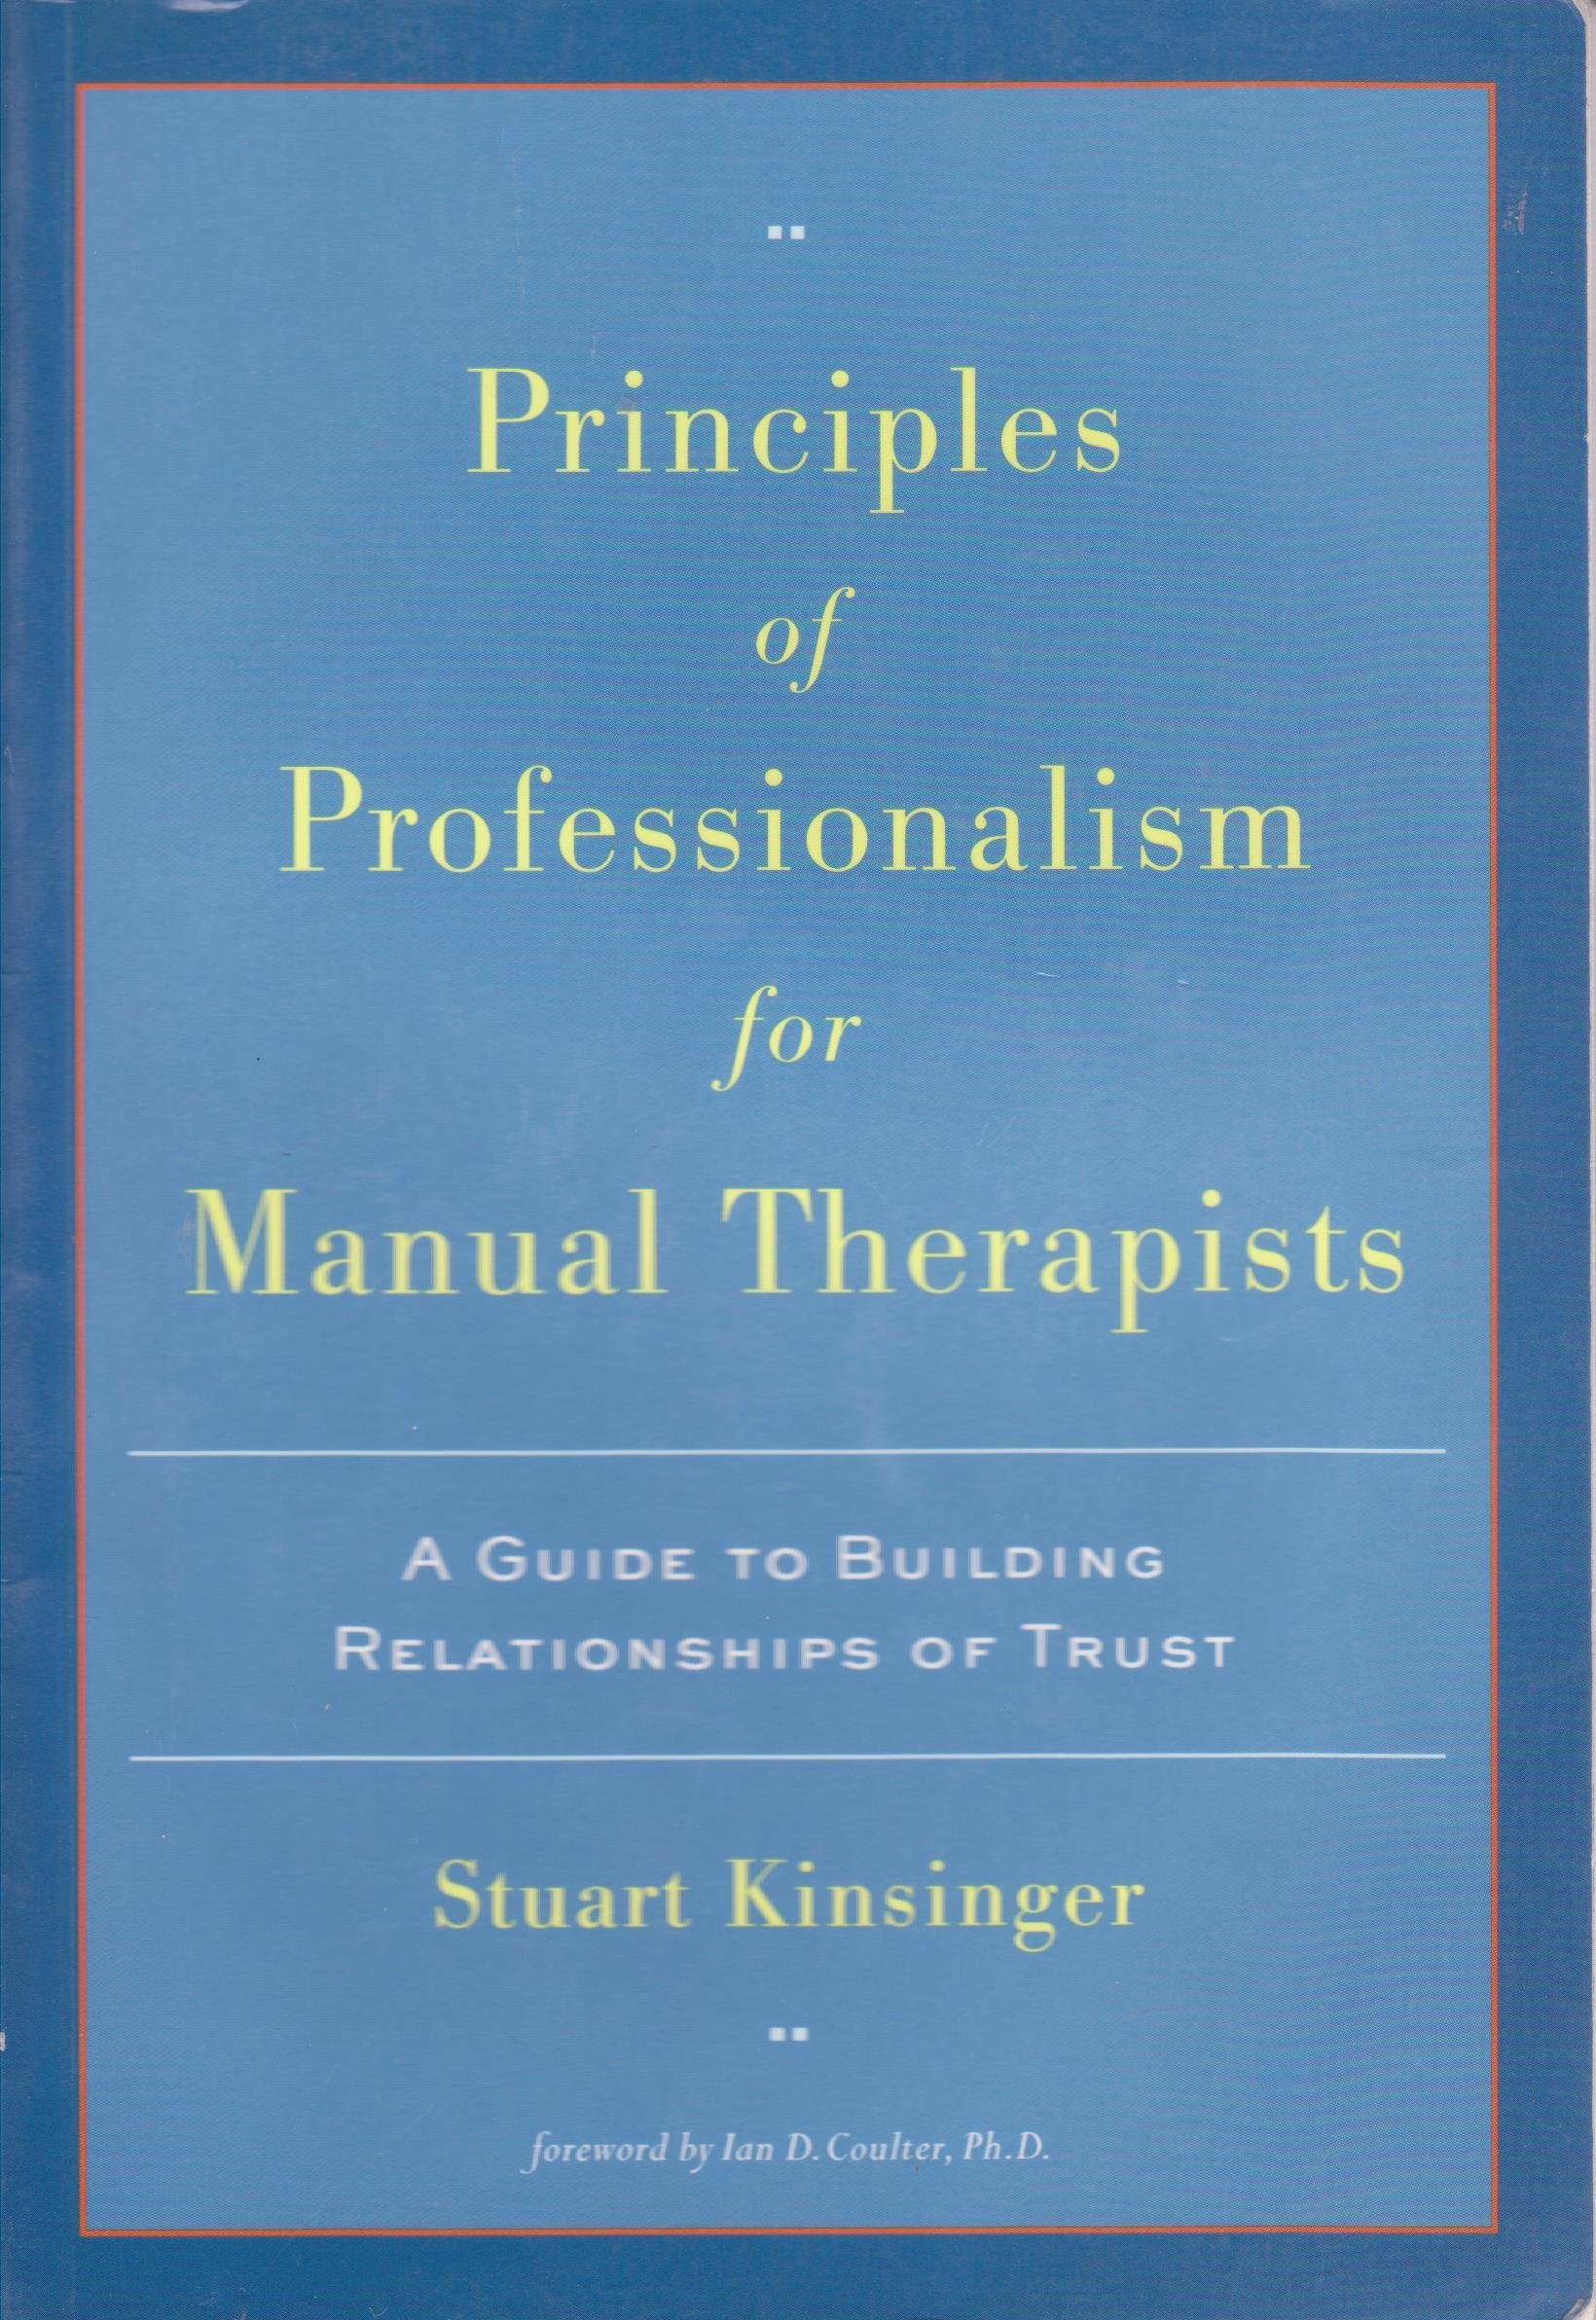 Principles of Professionalism for Manual Therapists: A Guide to Building Relationships of Trust